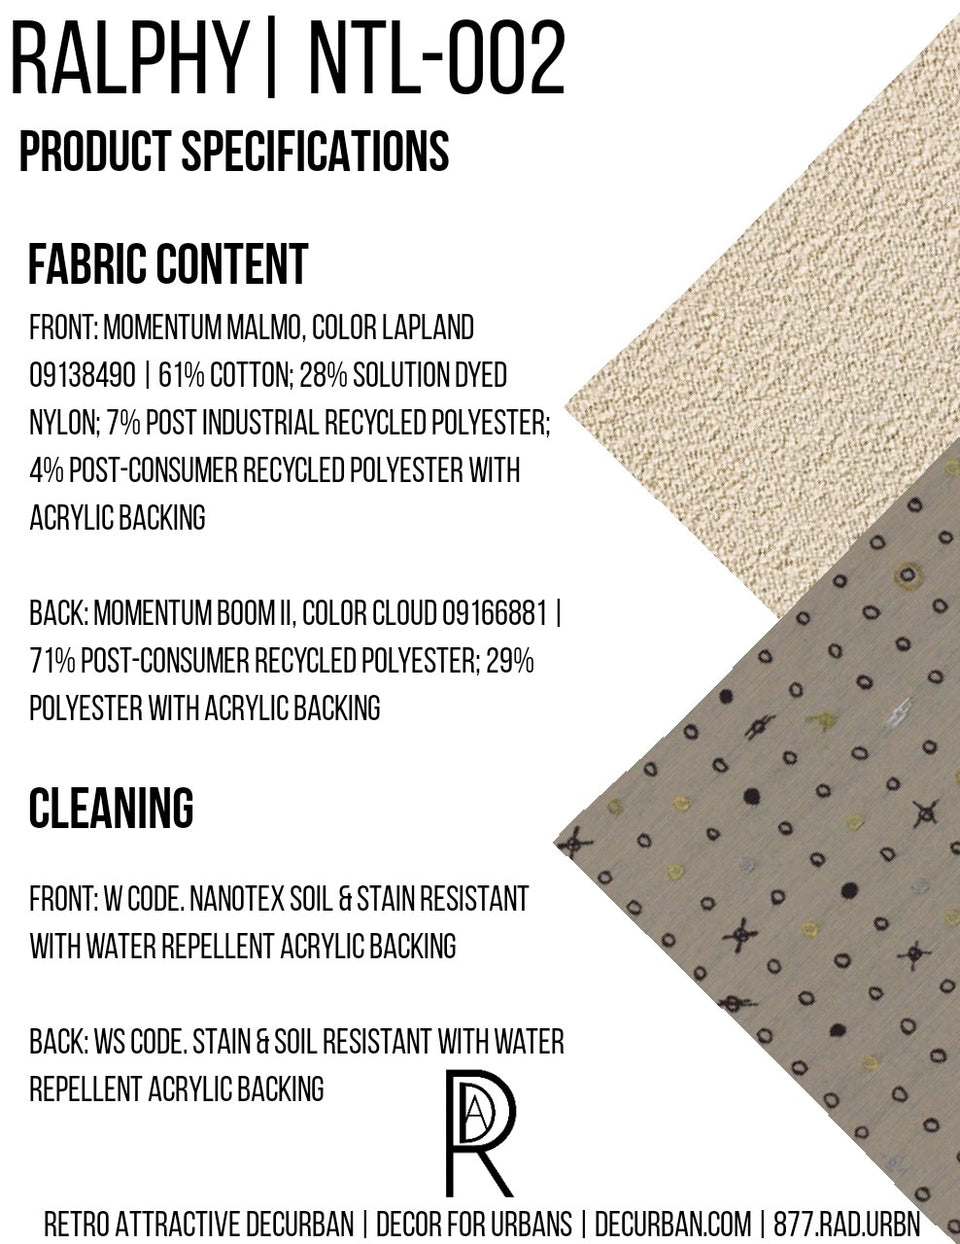 Decurban Ralphy Fabric Specification Sheet